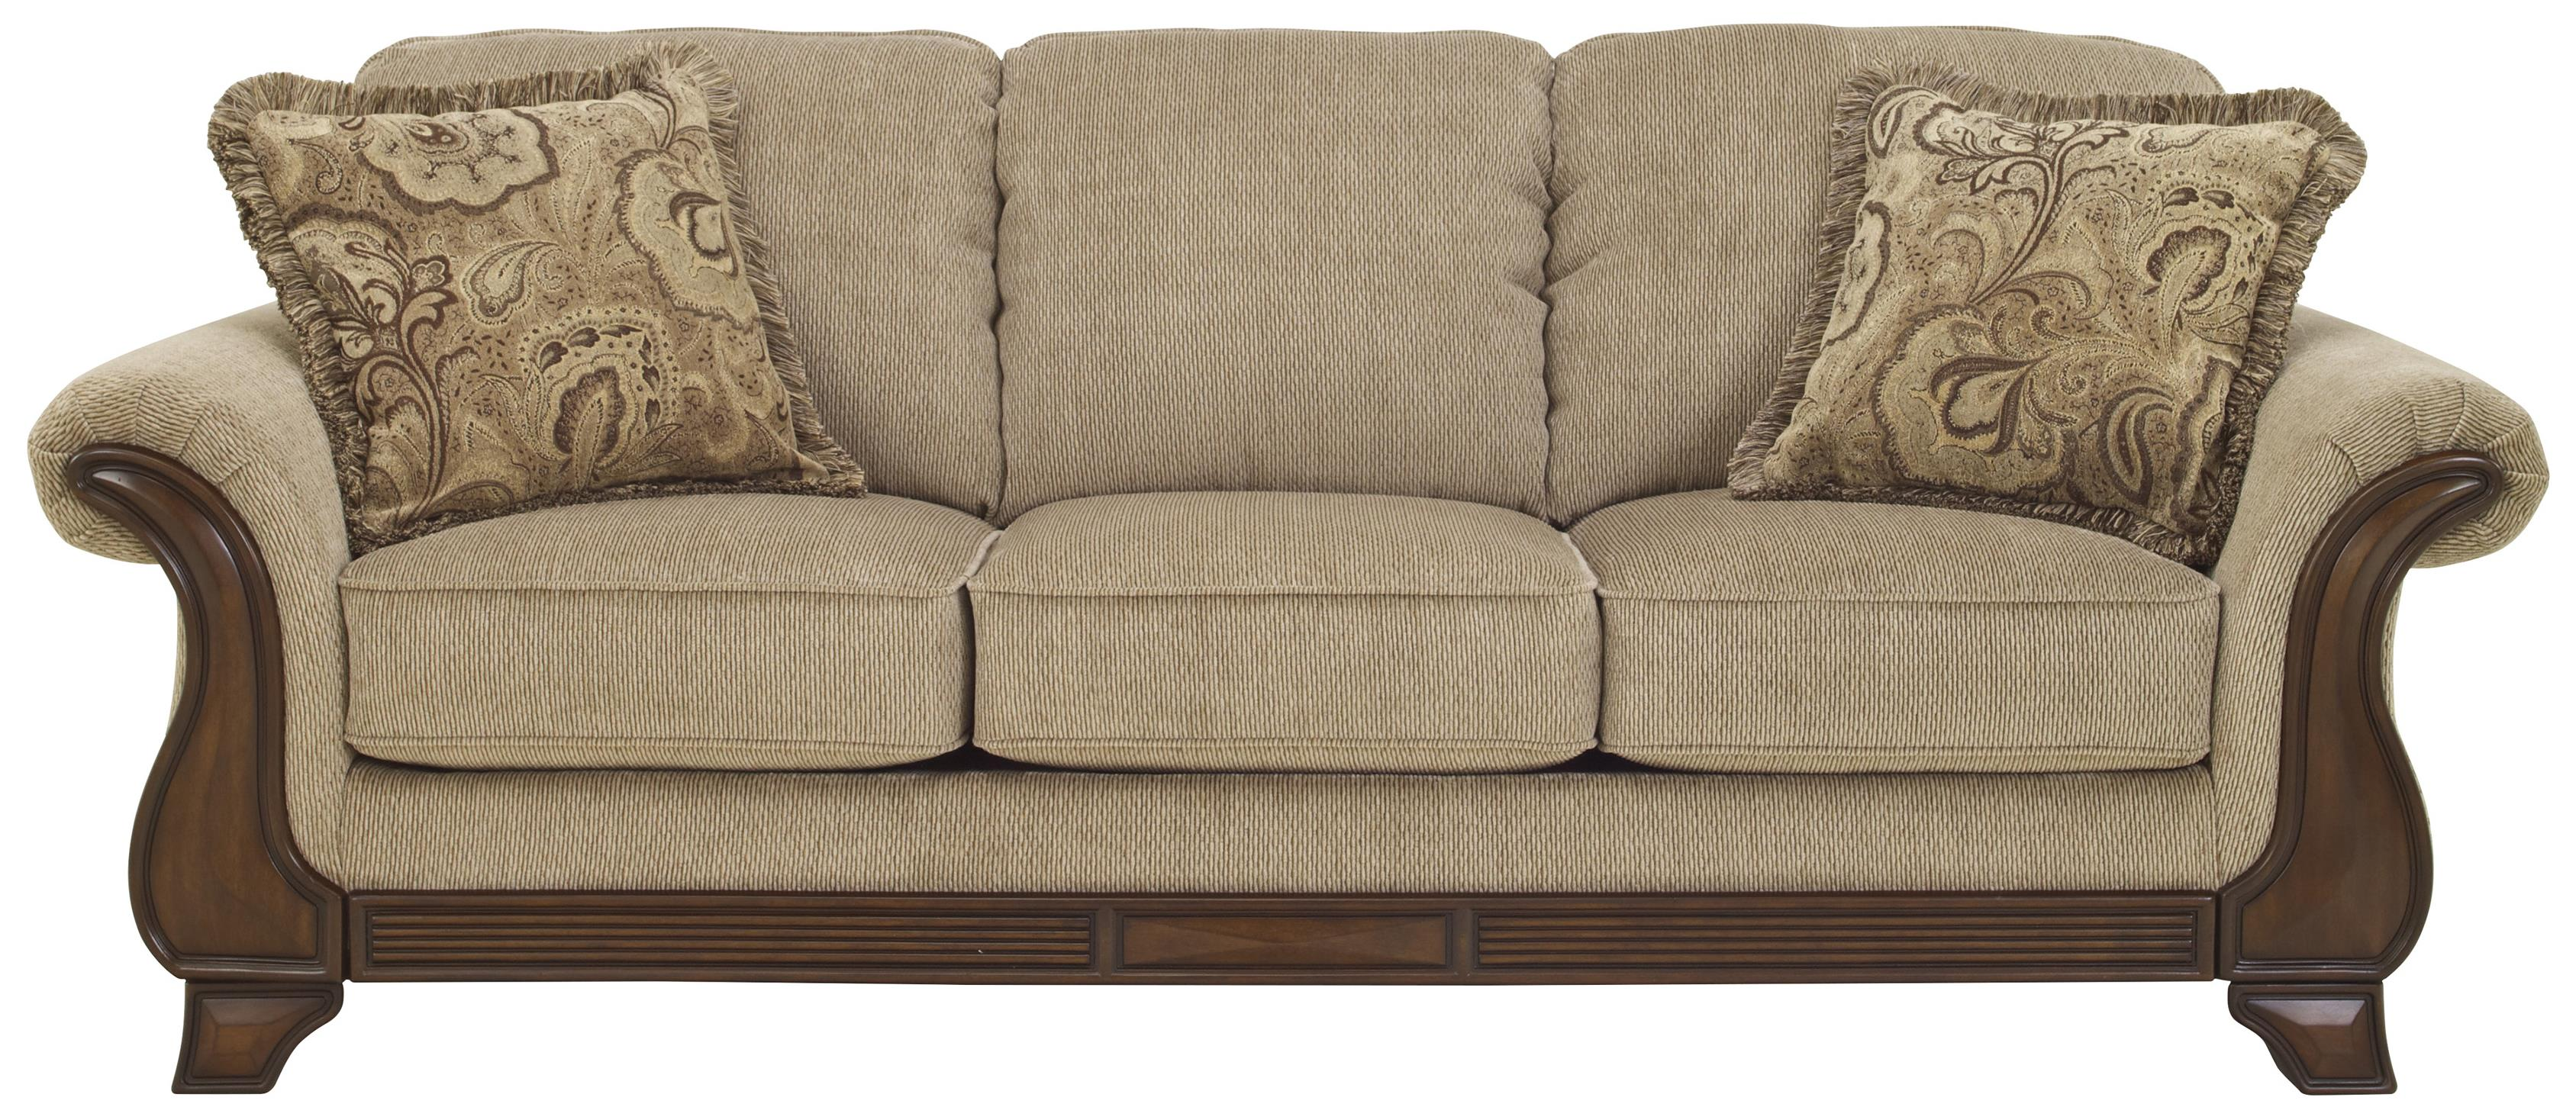 Signature Design by Ashley Lanett Queen Sofa Sleeper - Item Number: 4490039